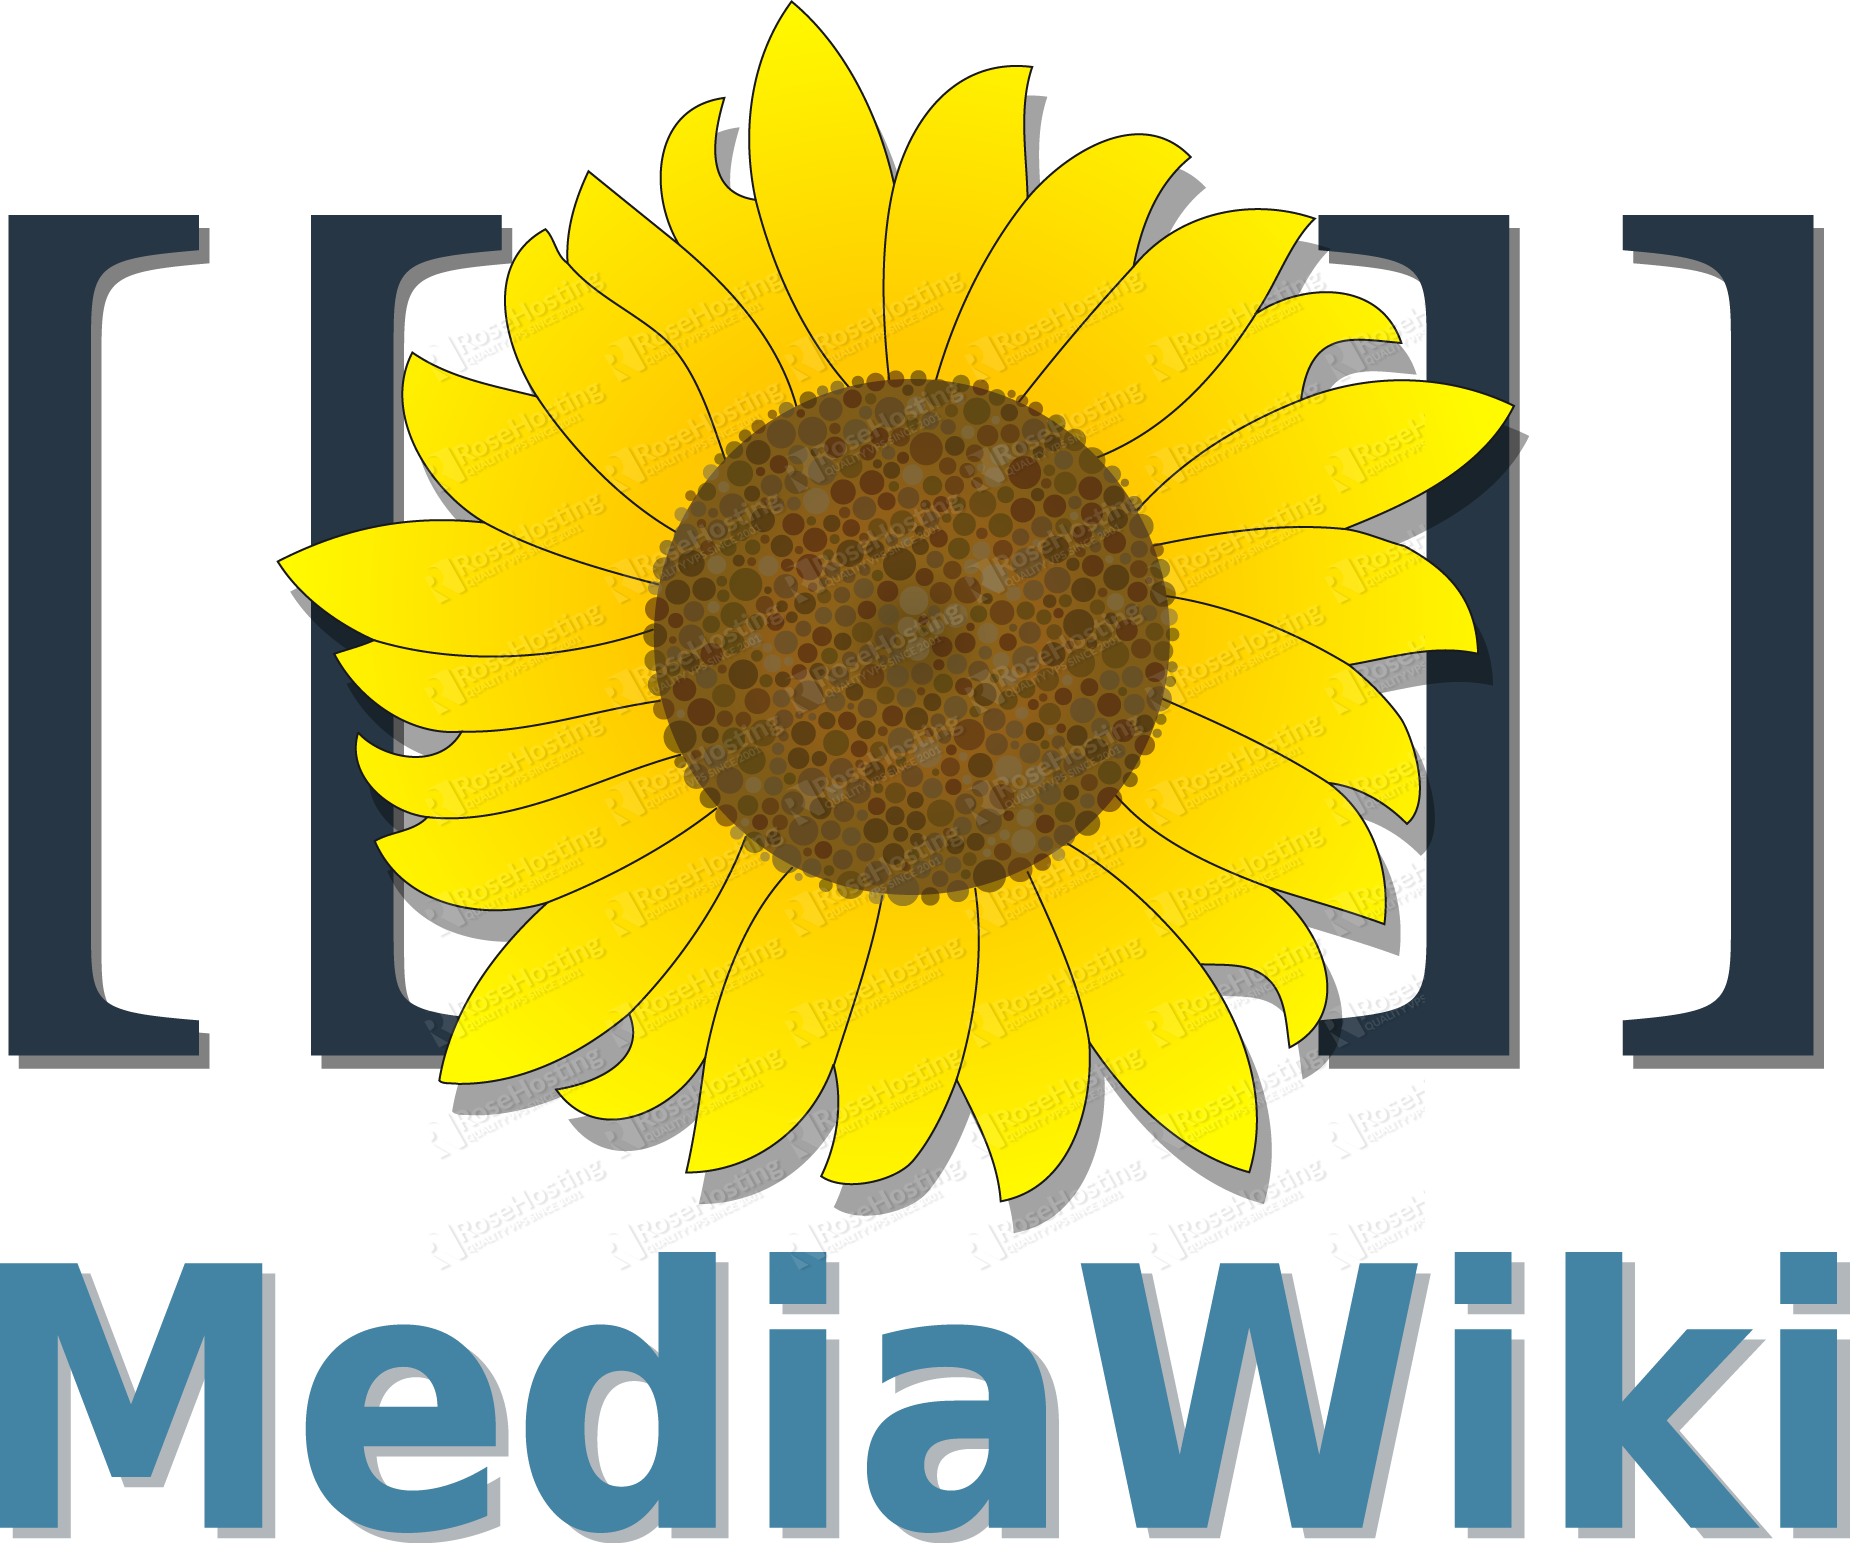 How to install MediaWiki on CentOS/Fedora